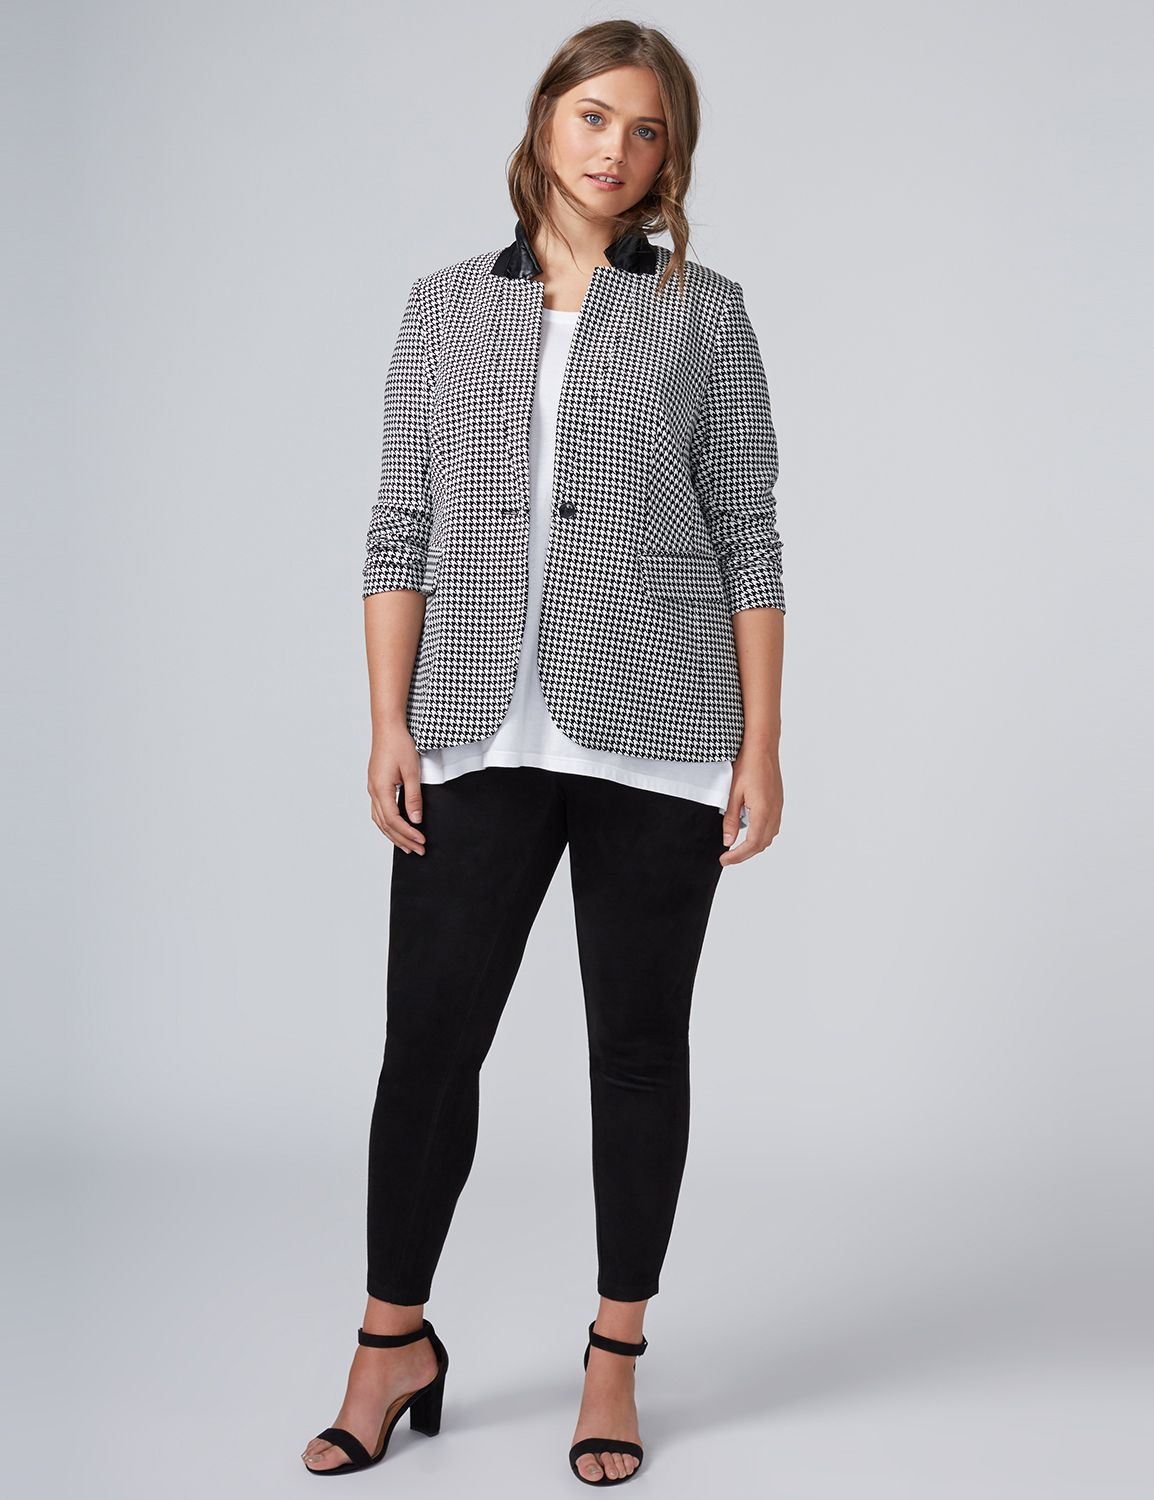 Lane Bryant Womens The Bryant Blazer - Houndstooth 16 Black Houndstooth Print